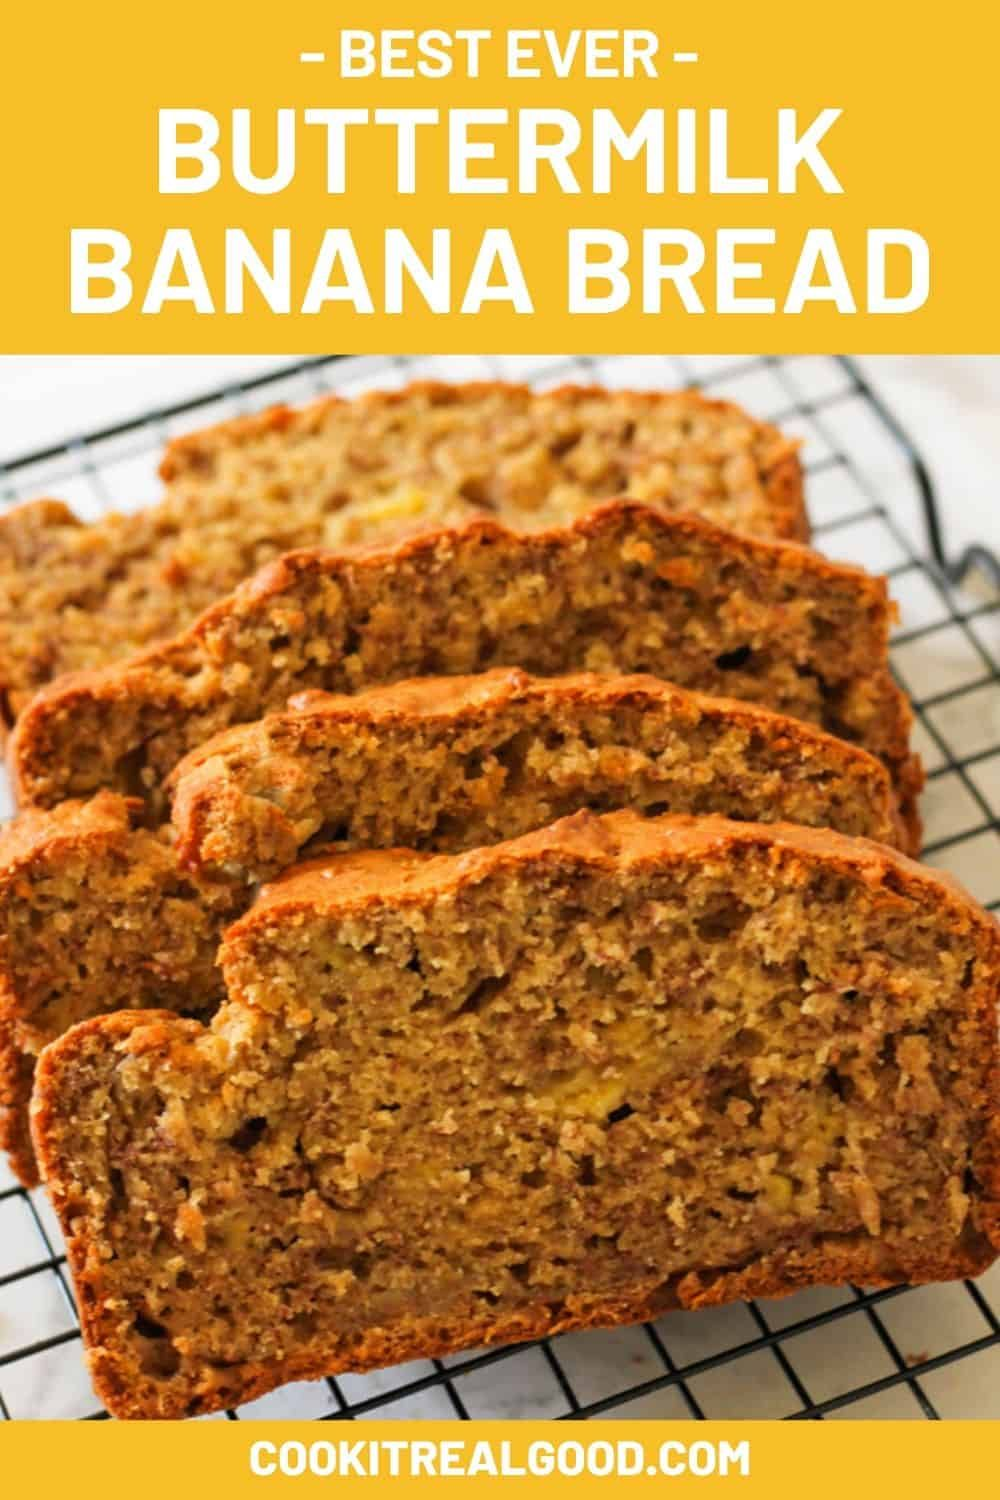 Buttermilk Banana Bread Recipe Cook It Real Good In 2020 Buttermilk Banana Bread Banana Bread Recipes Banana Recipes